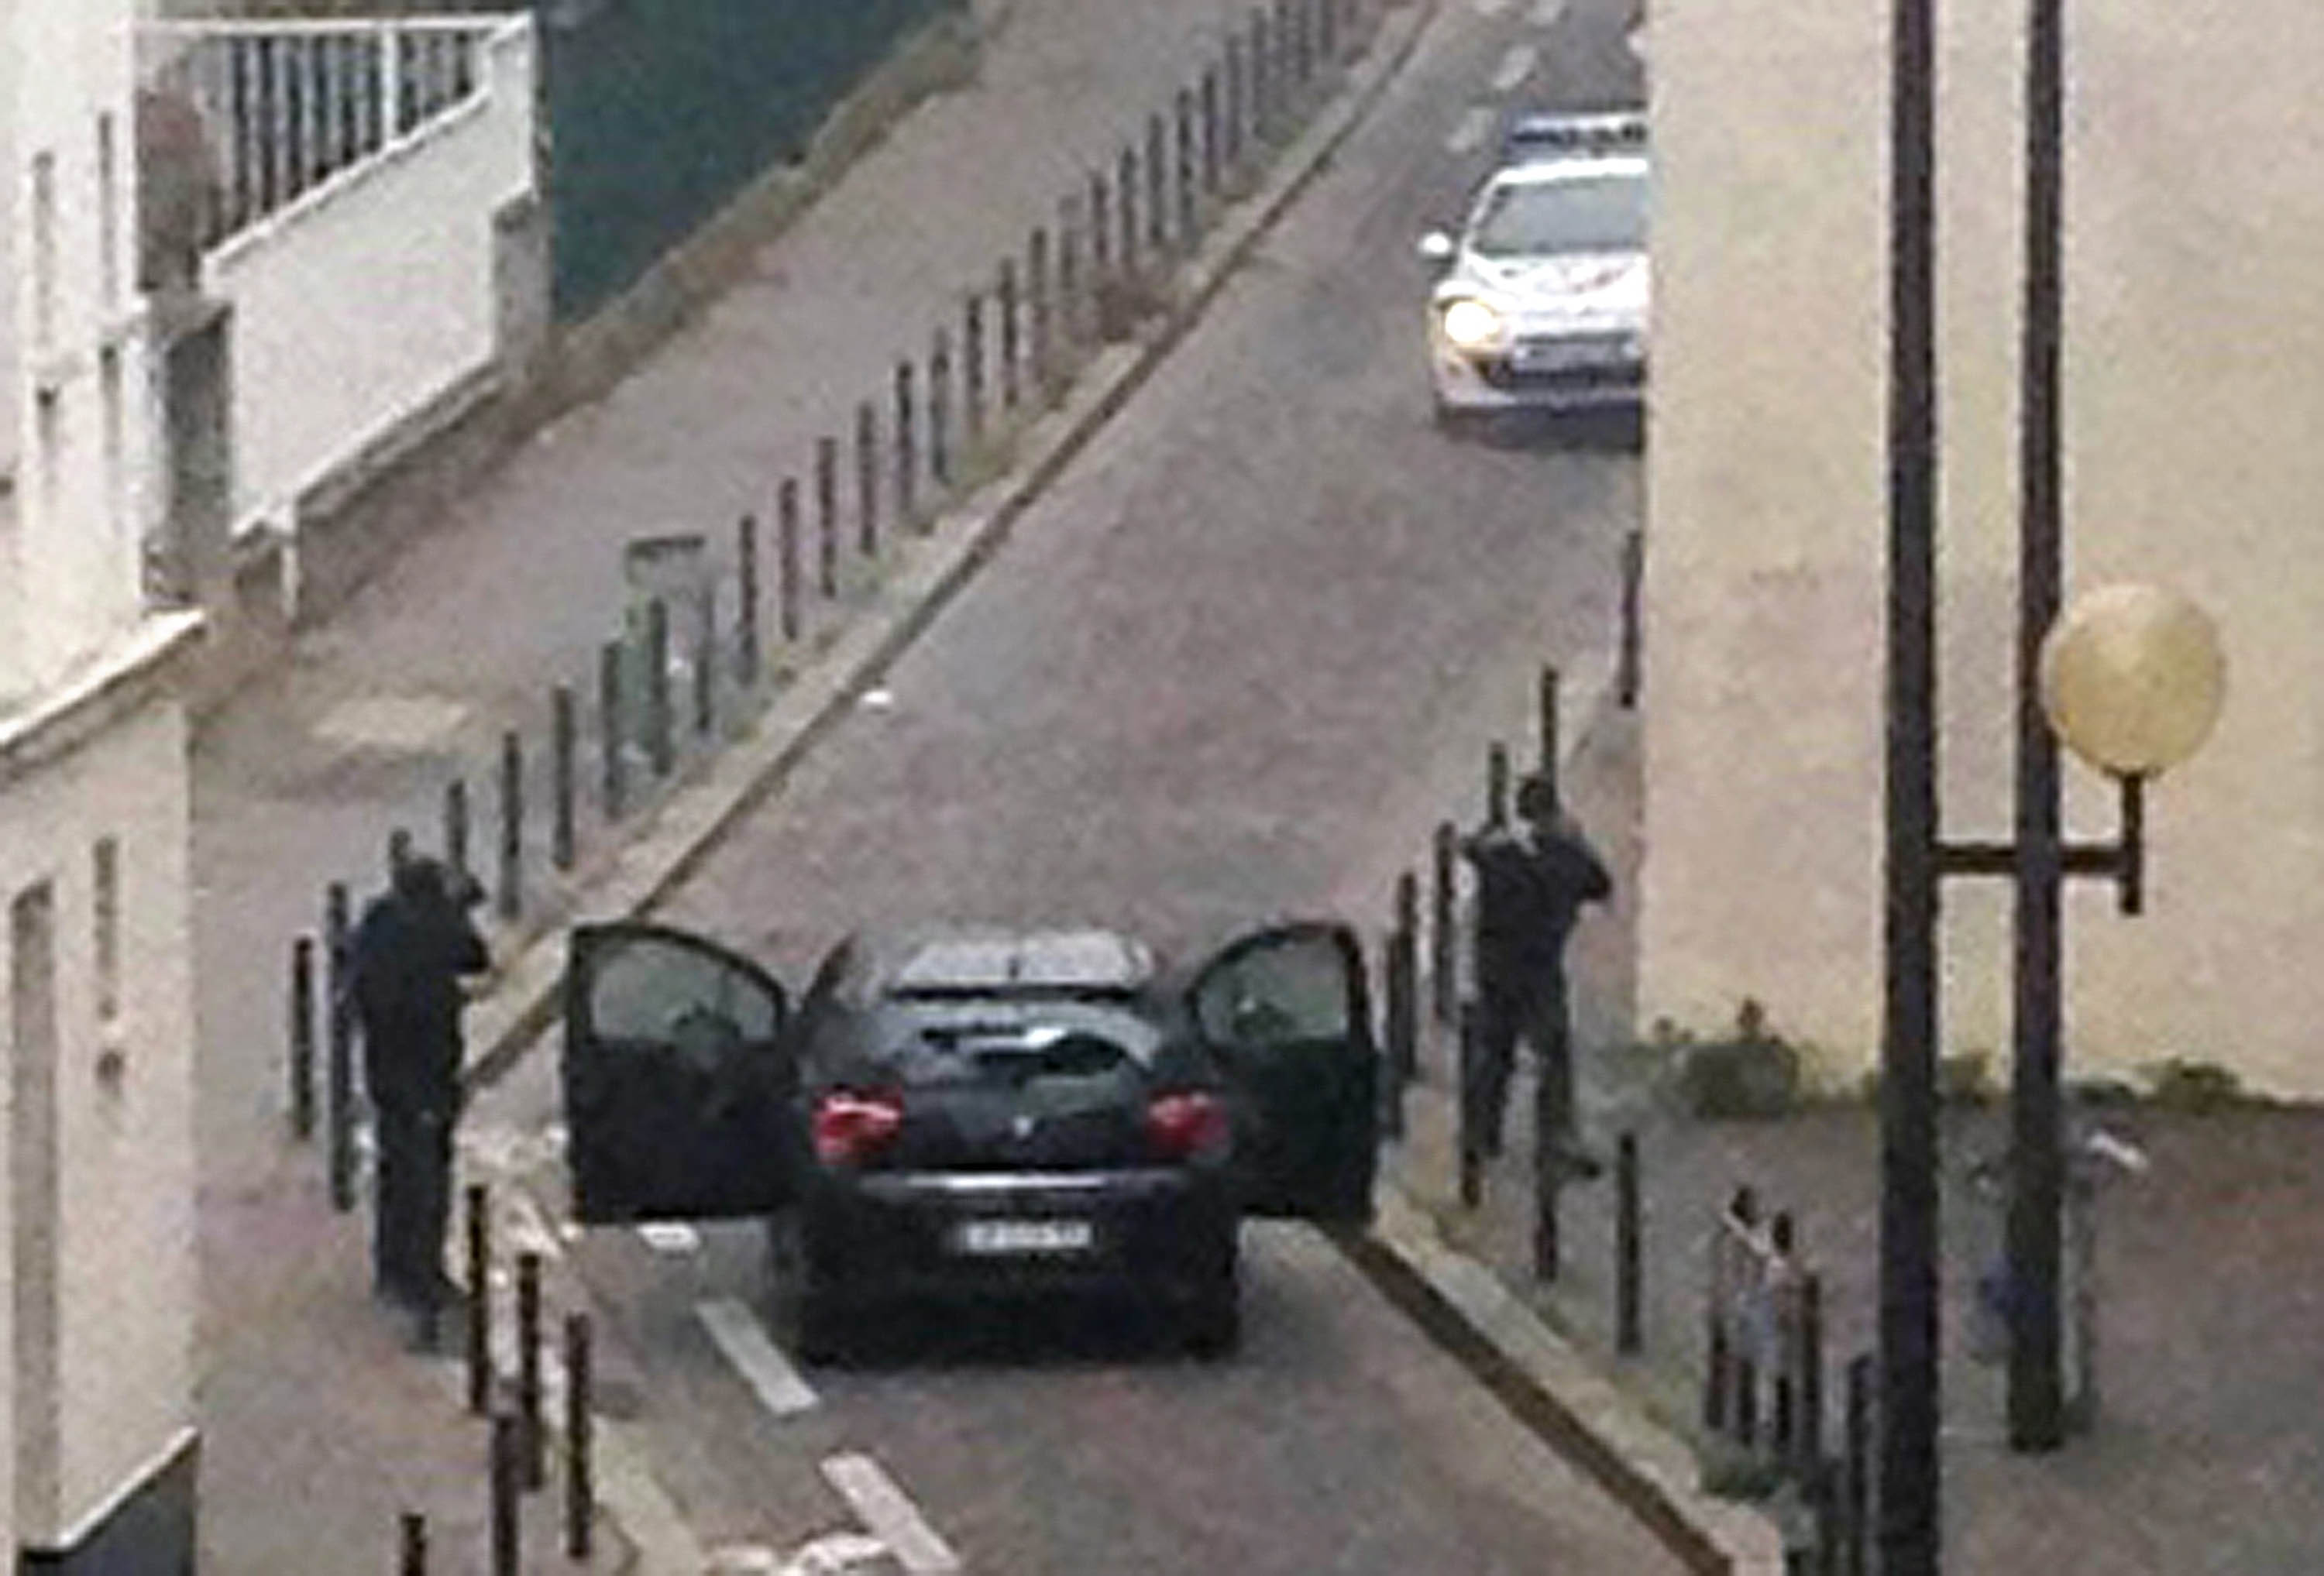 Armed gunmen face police officers near the offices of the French satirical newspaper Charlie Hebdo during the attack in Paris, on January 7, 2015.